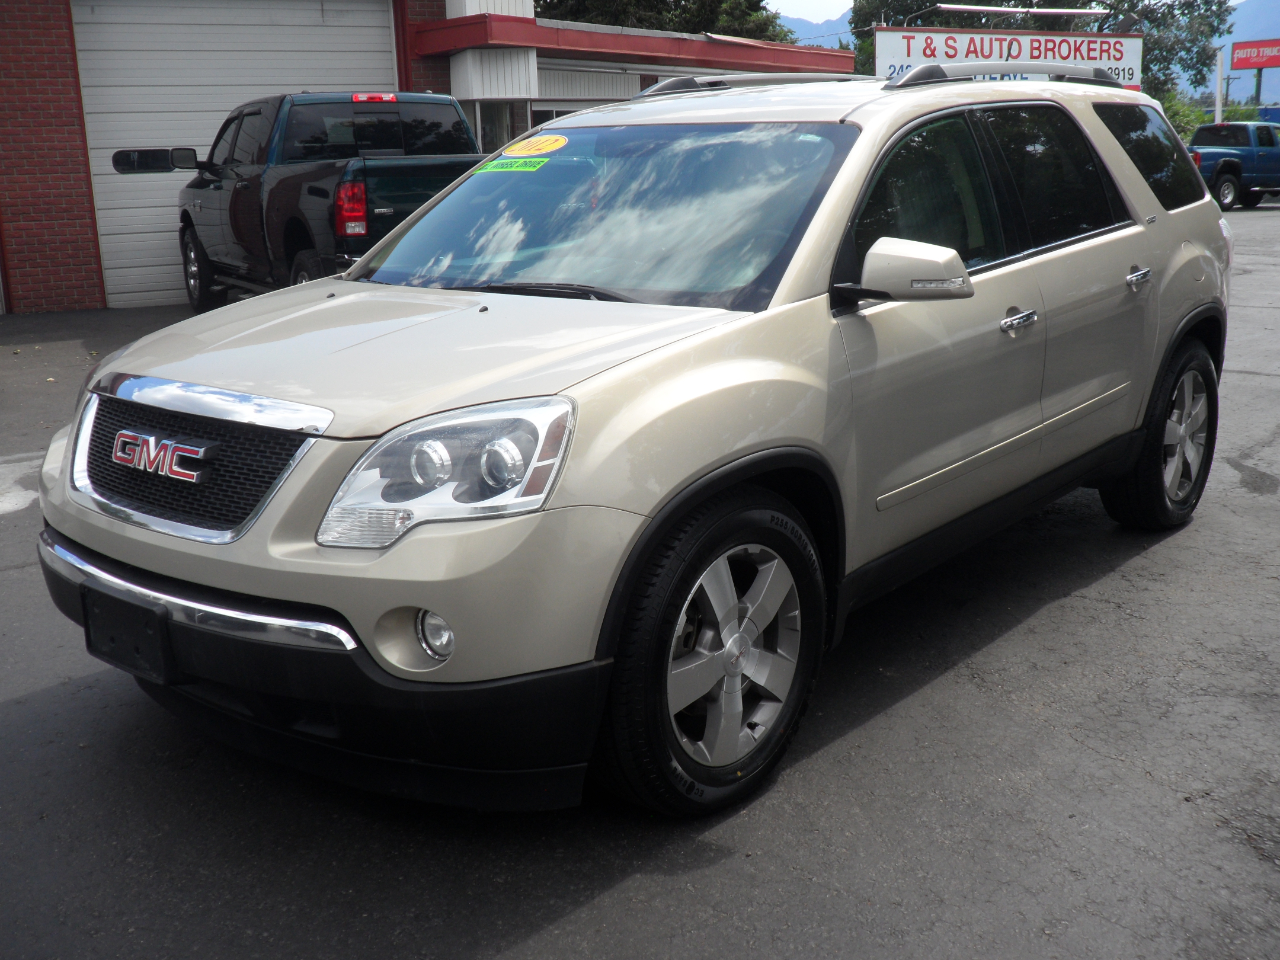 Used 2012 Gmc Acadia Slt 1 Awd For Sale In Colorado Springs Co